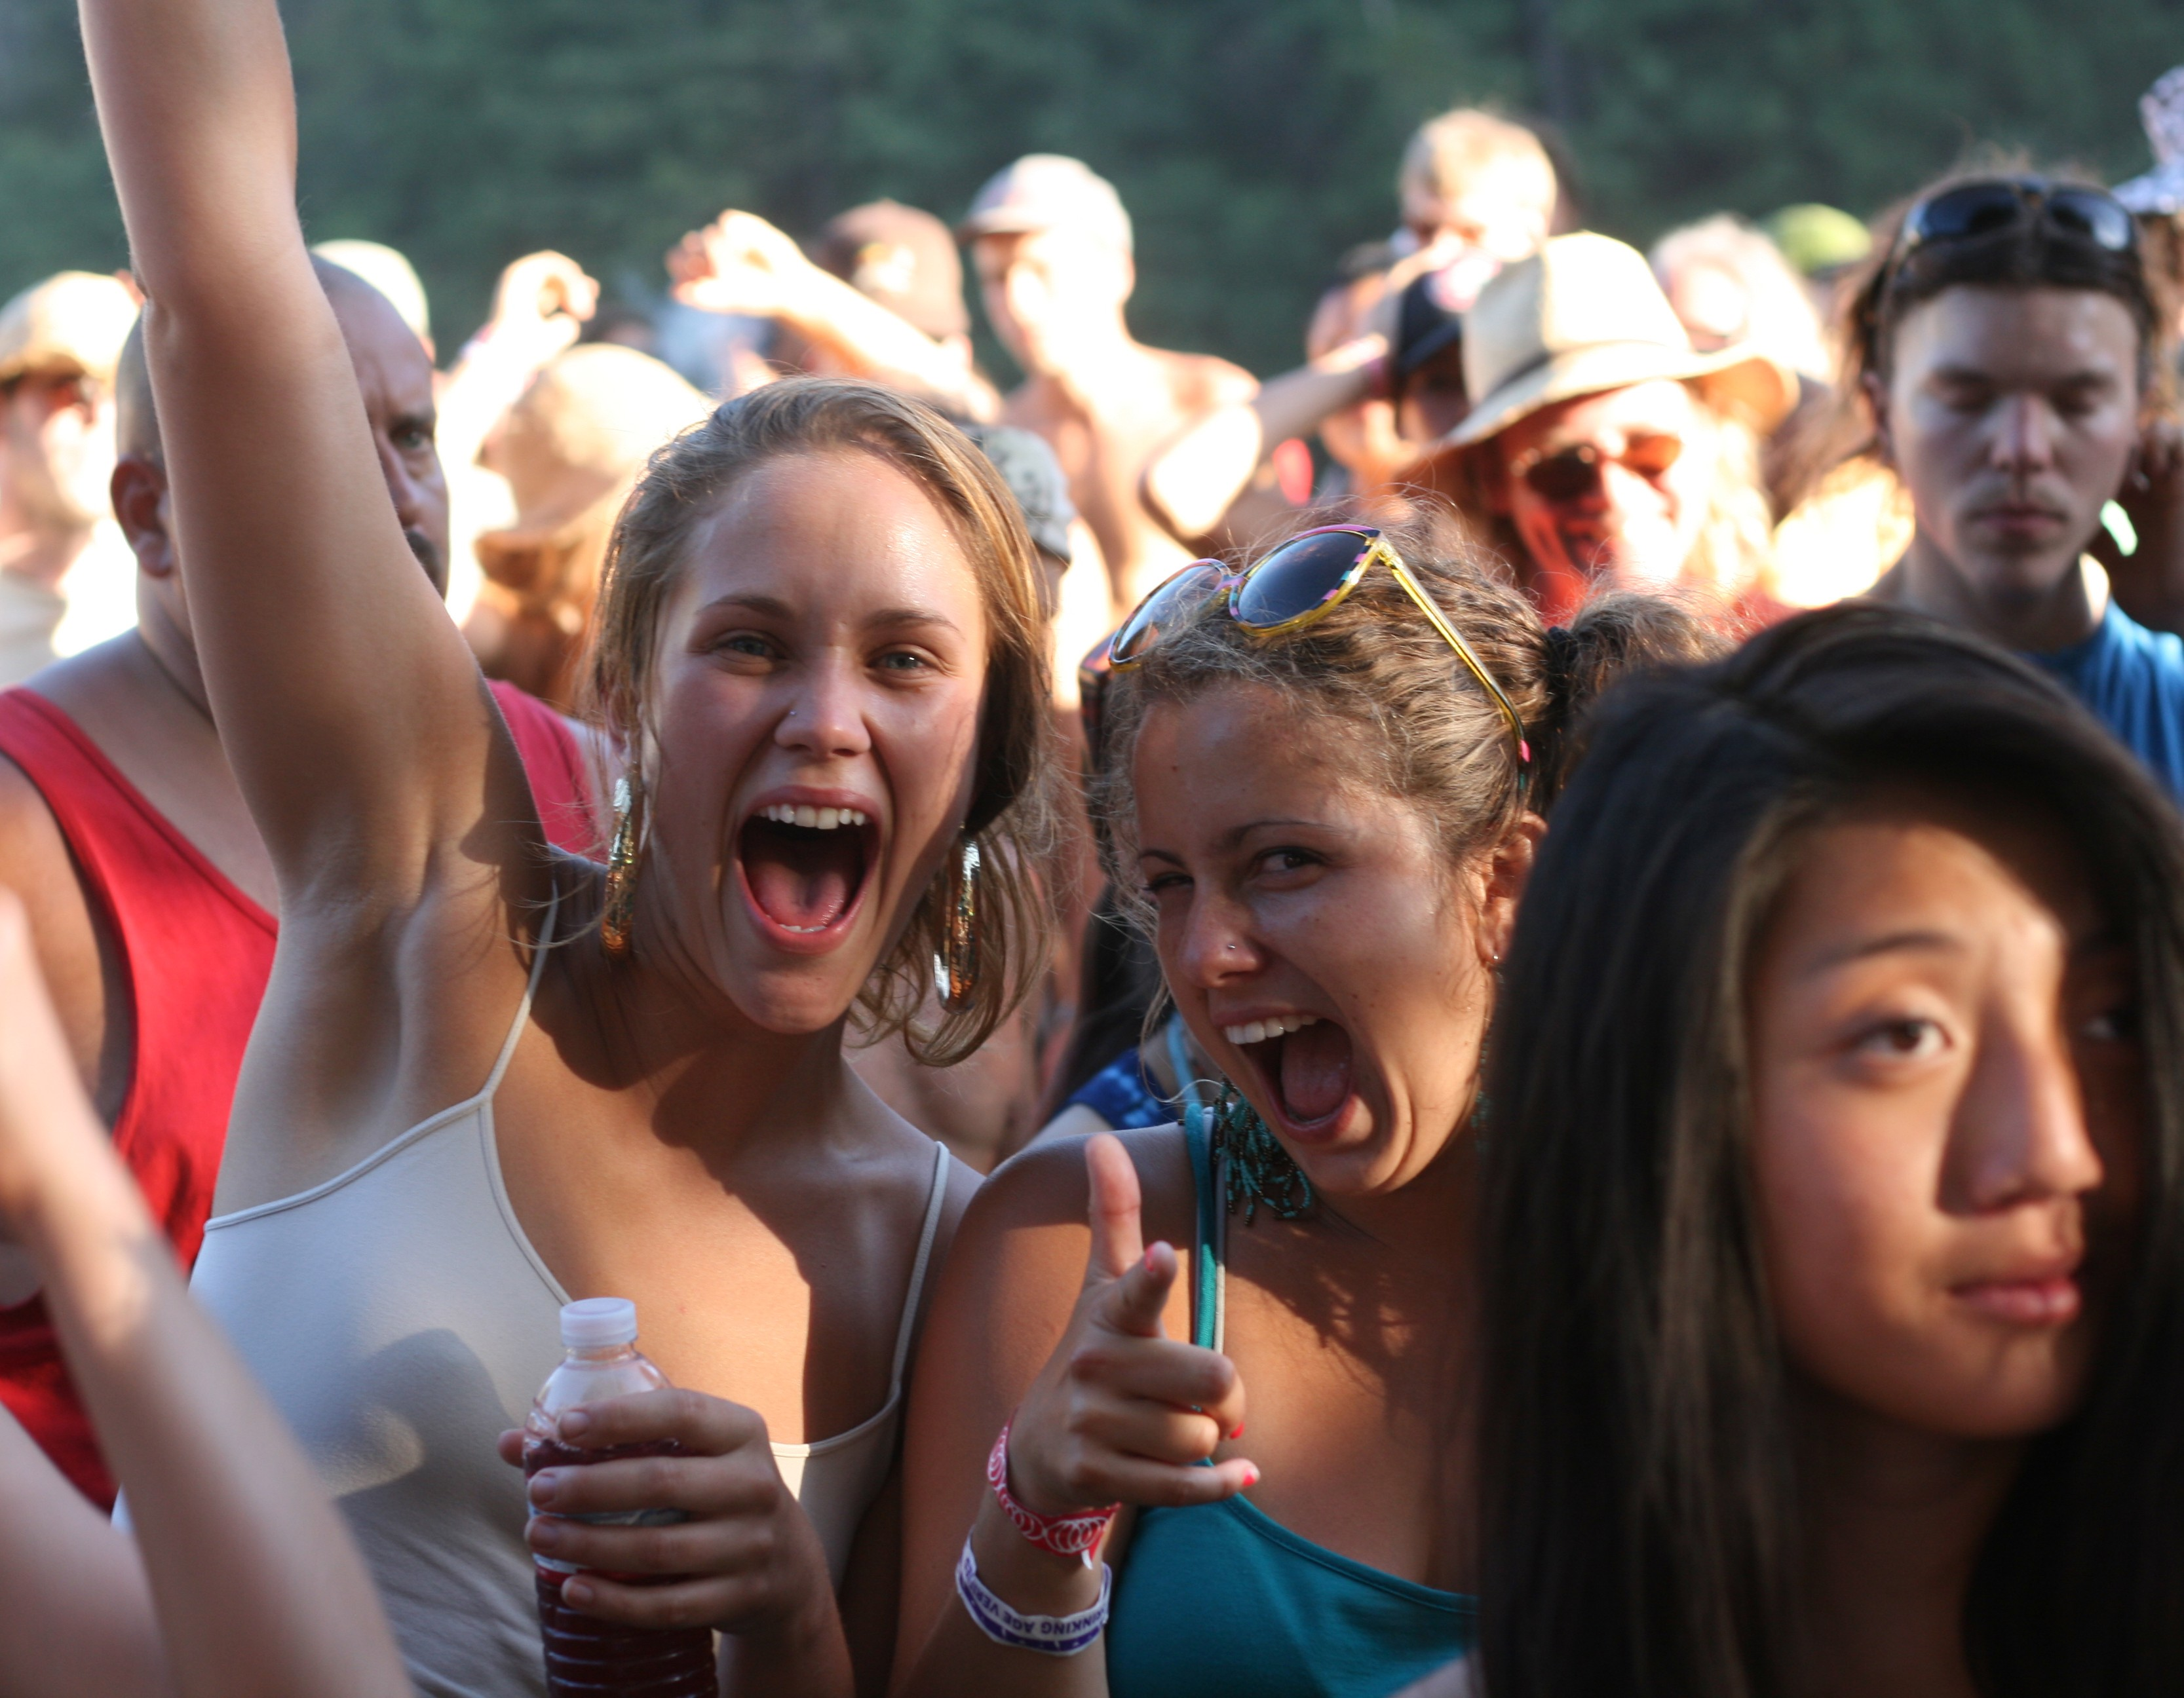 Concertgoers at Reggae on the River - PHOTO BY BOB DORAN